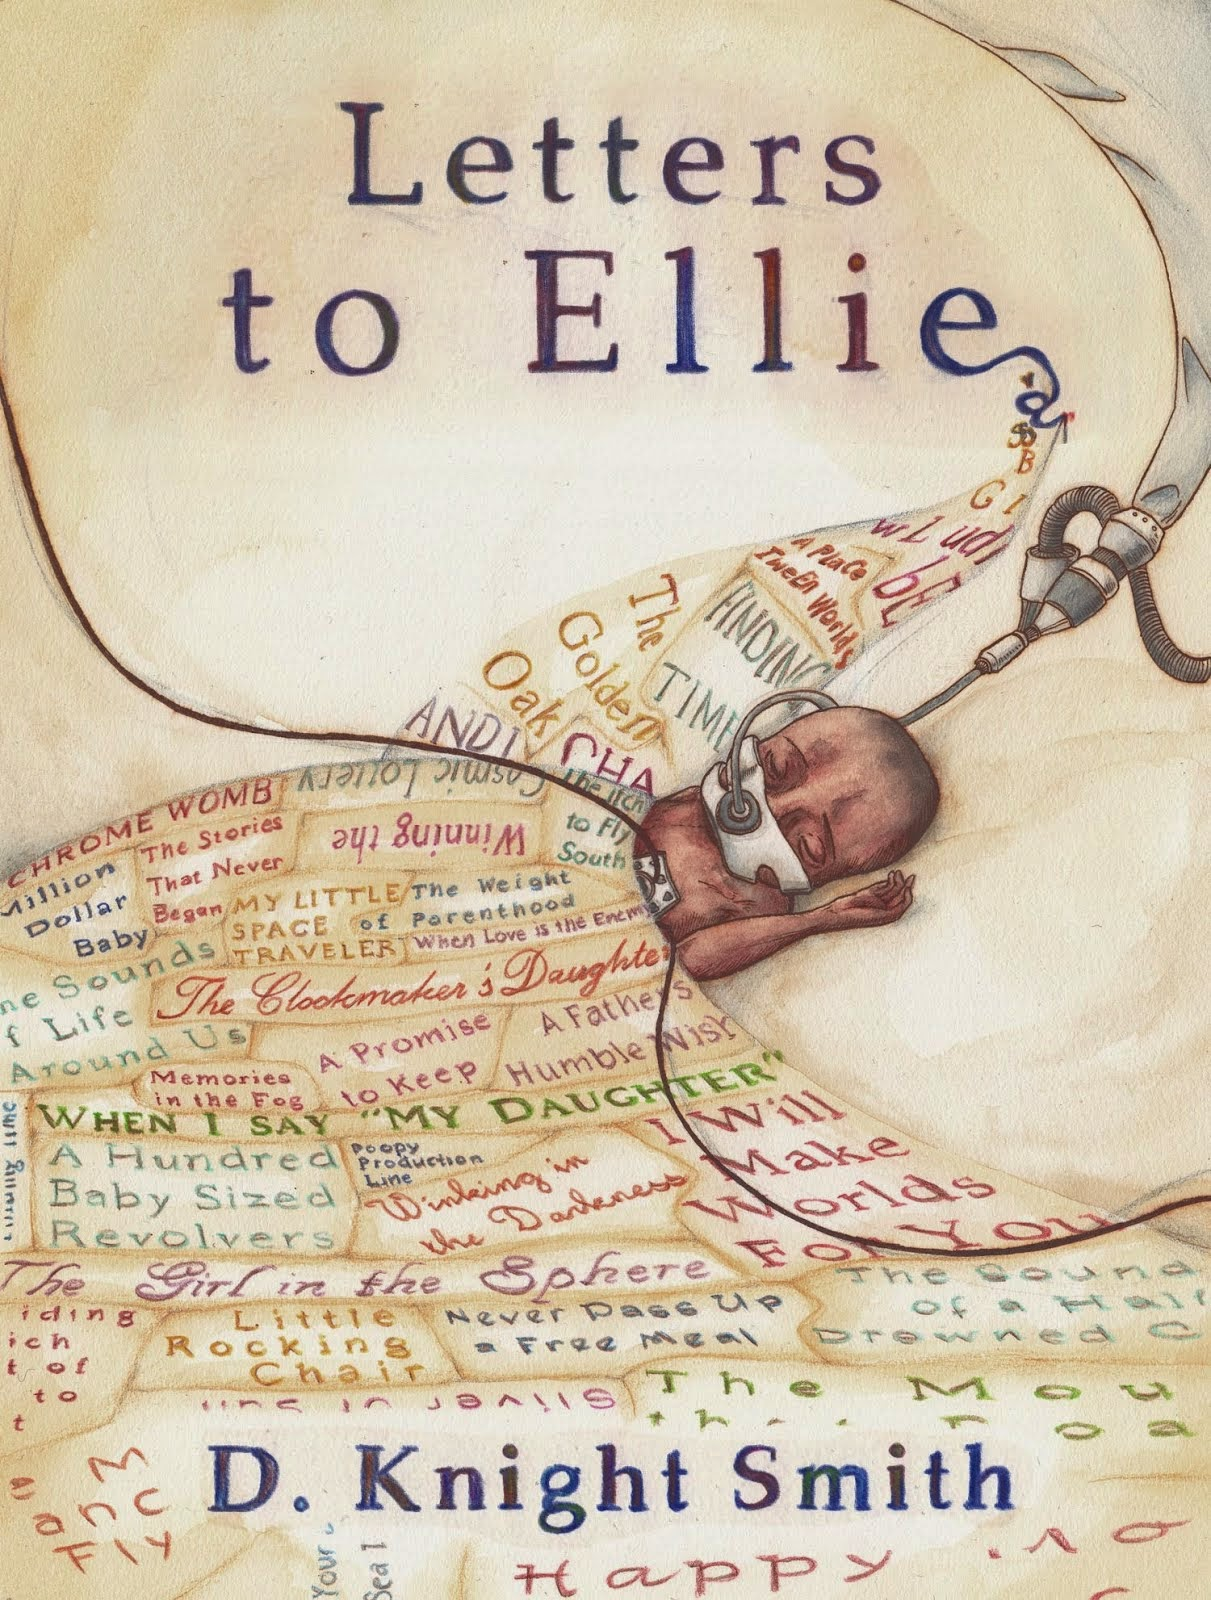 Letters to Ellie Book!